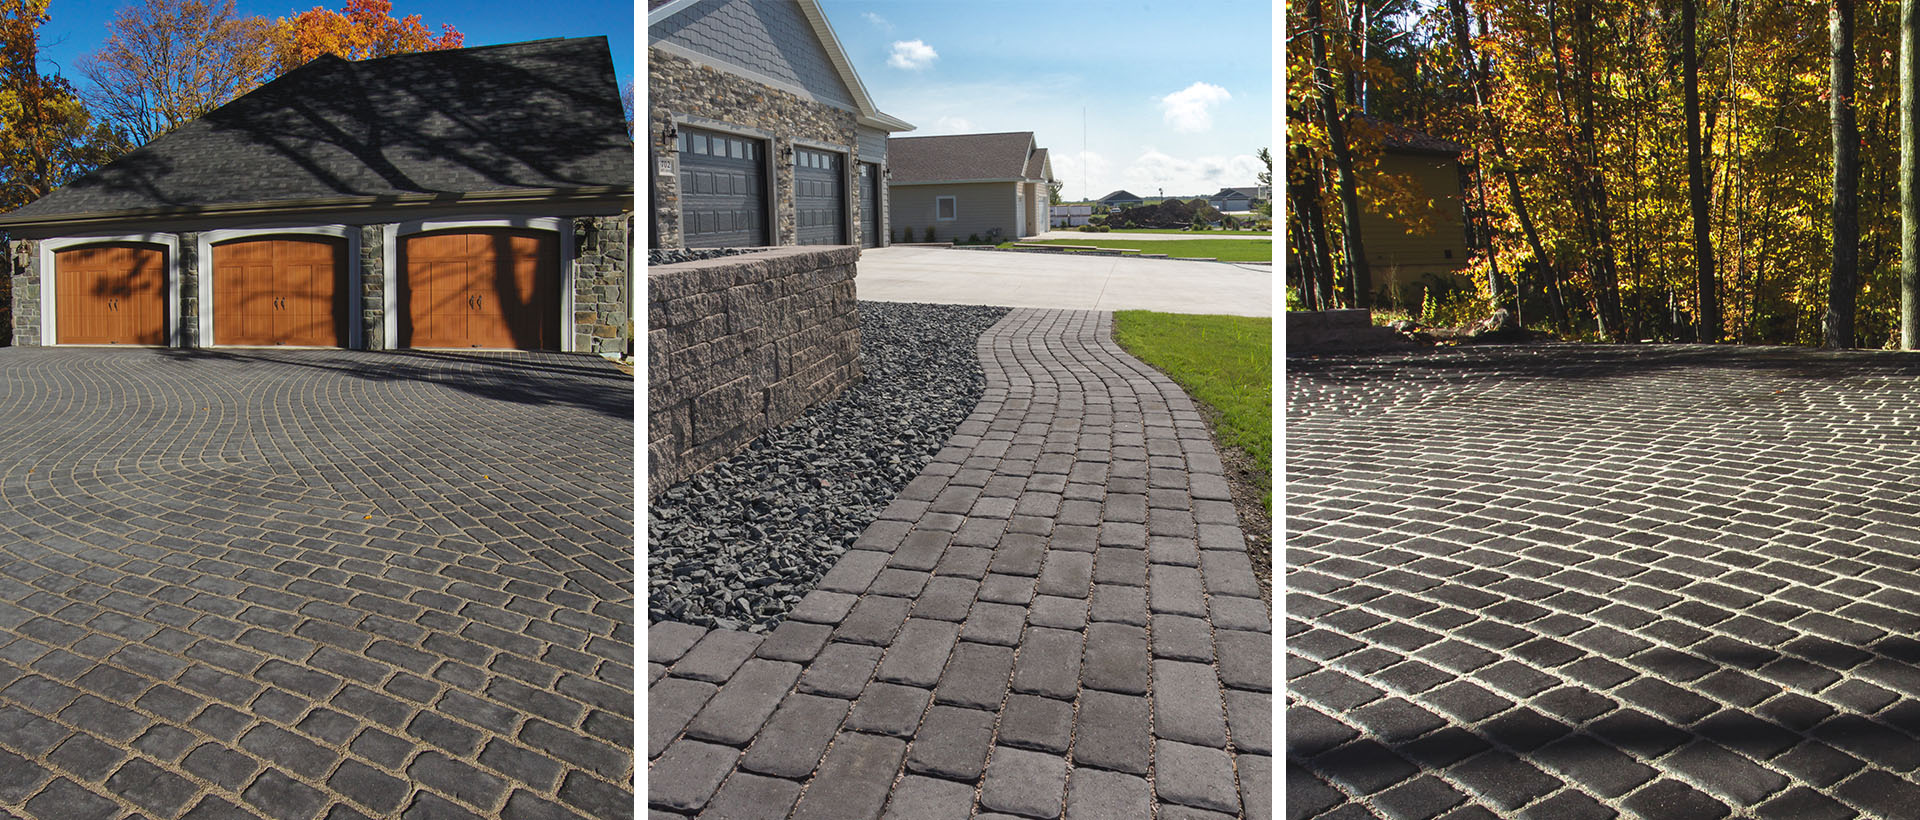 With its textured tops and irregular edges, Cobble Stone Pavers recreate the look of a centuries-old European boulevard. The open joint design makes it ideal for eco-friendly, permeable applications.